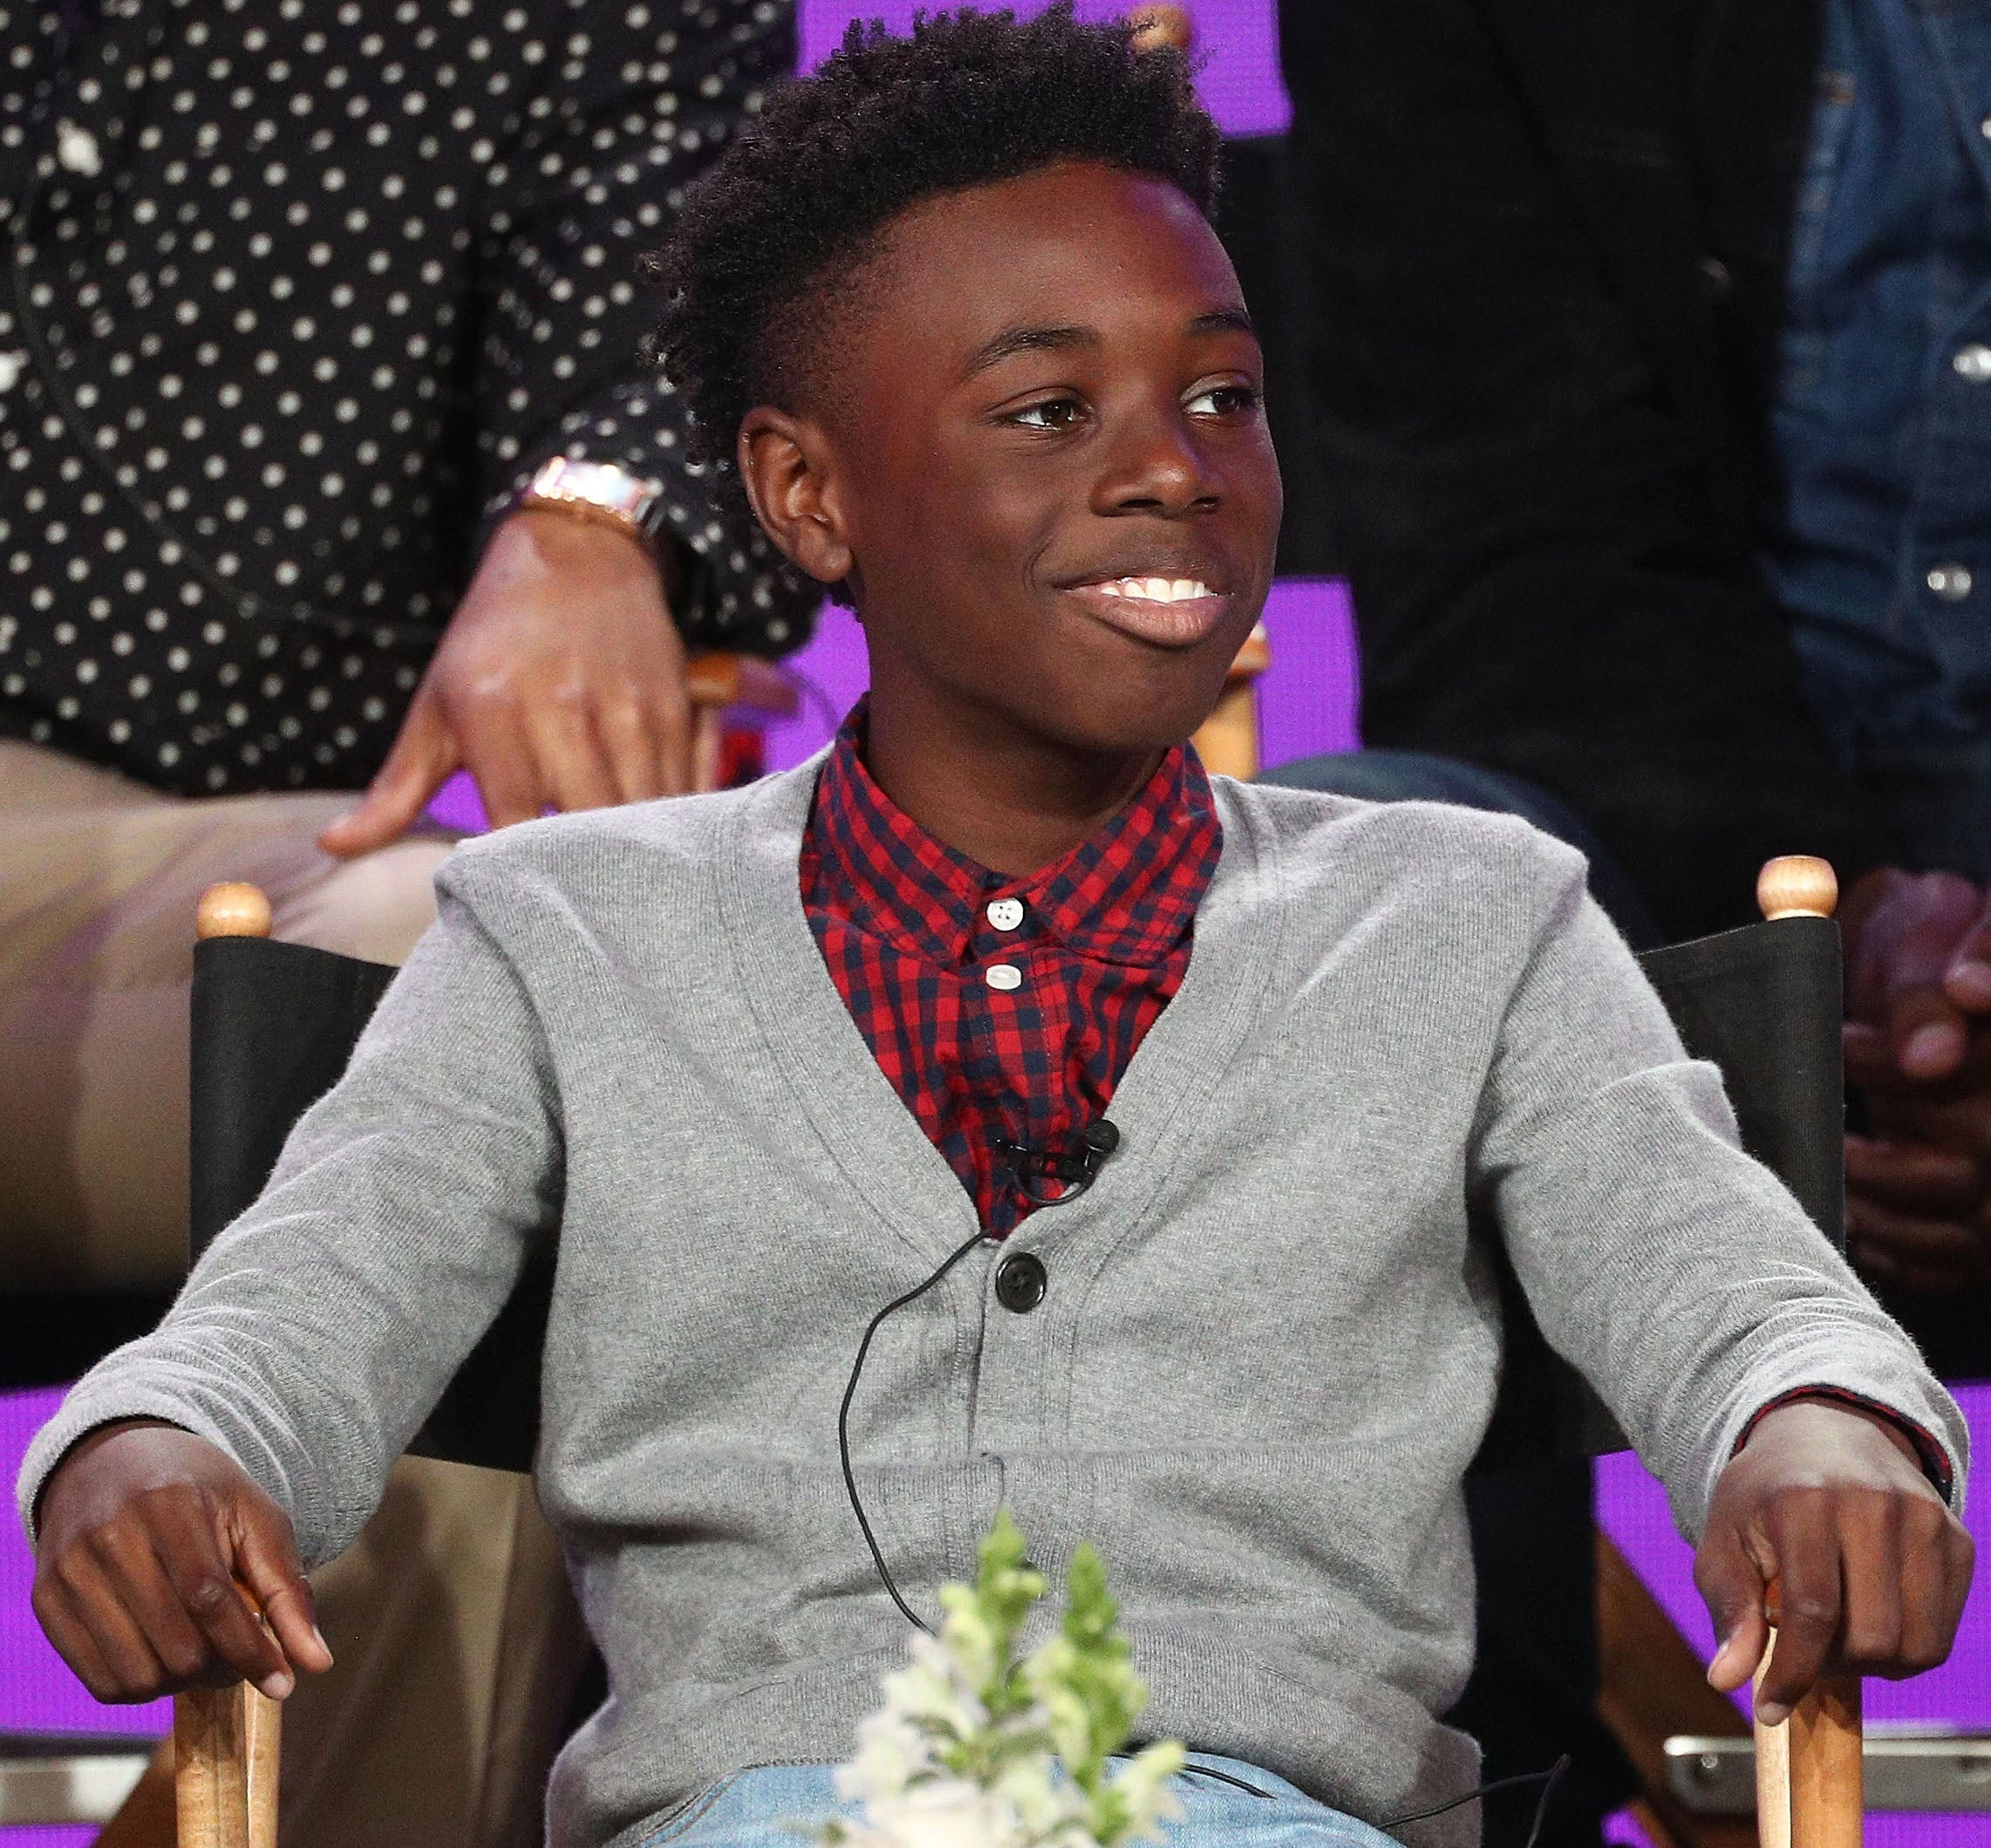 5 Things To Know About 'The Chi' Star Alex Hibbert